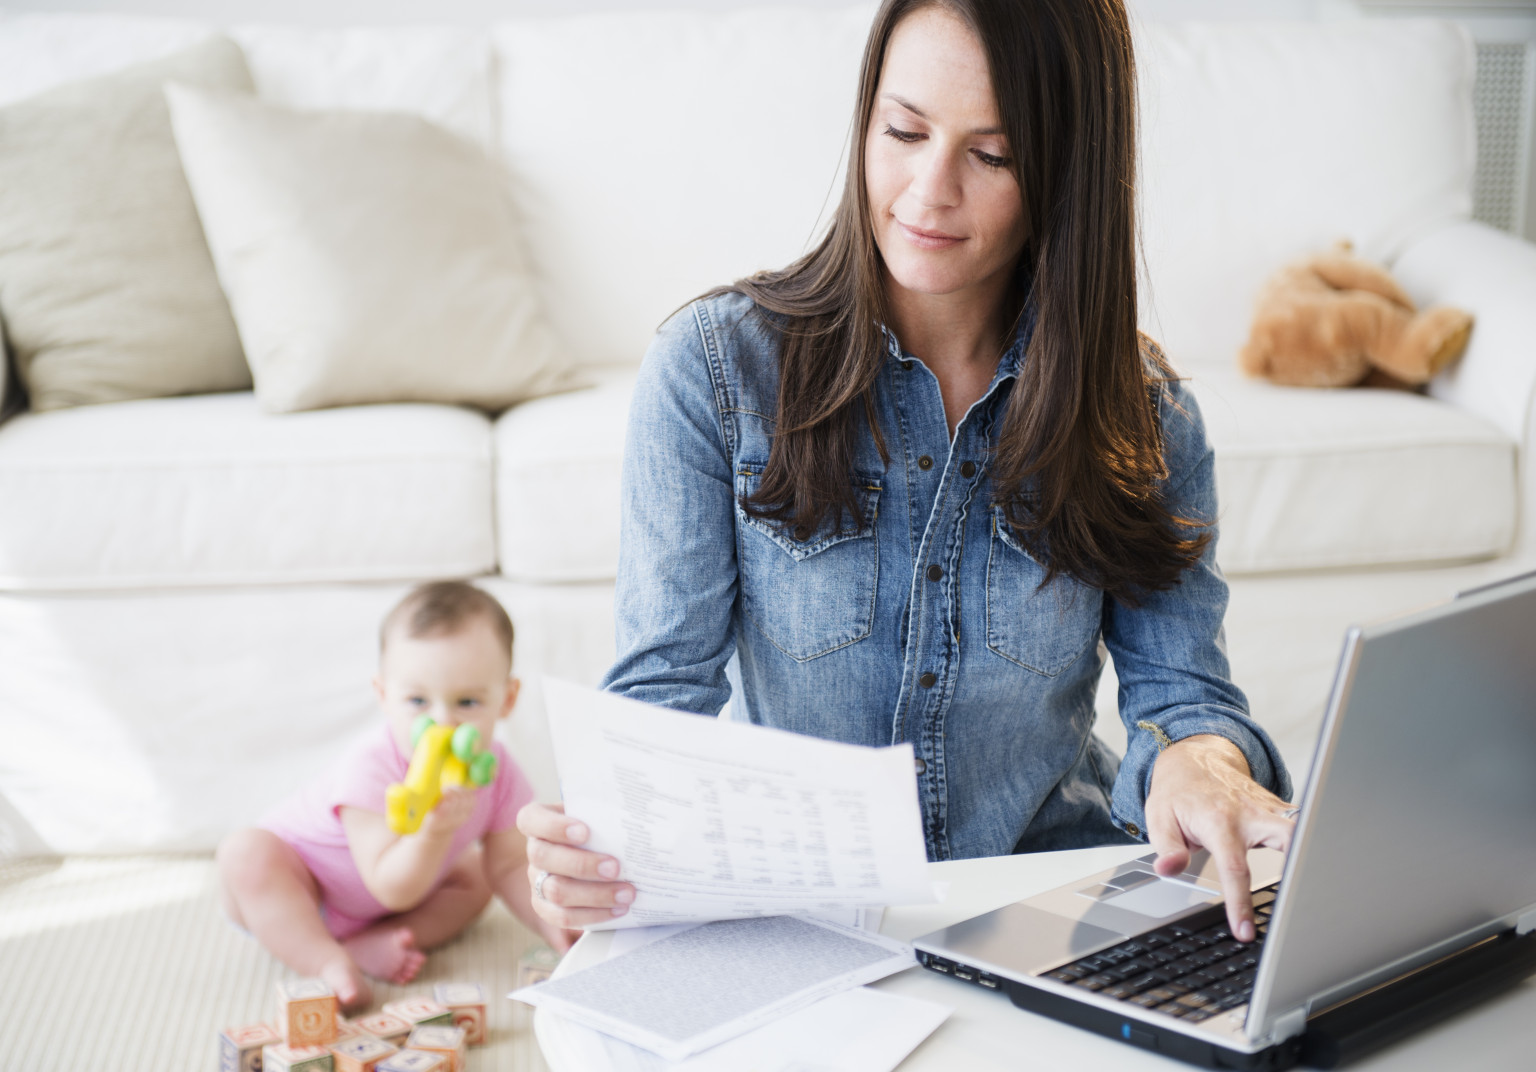 Is it possible to balance work and family at the same time?